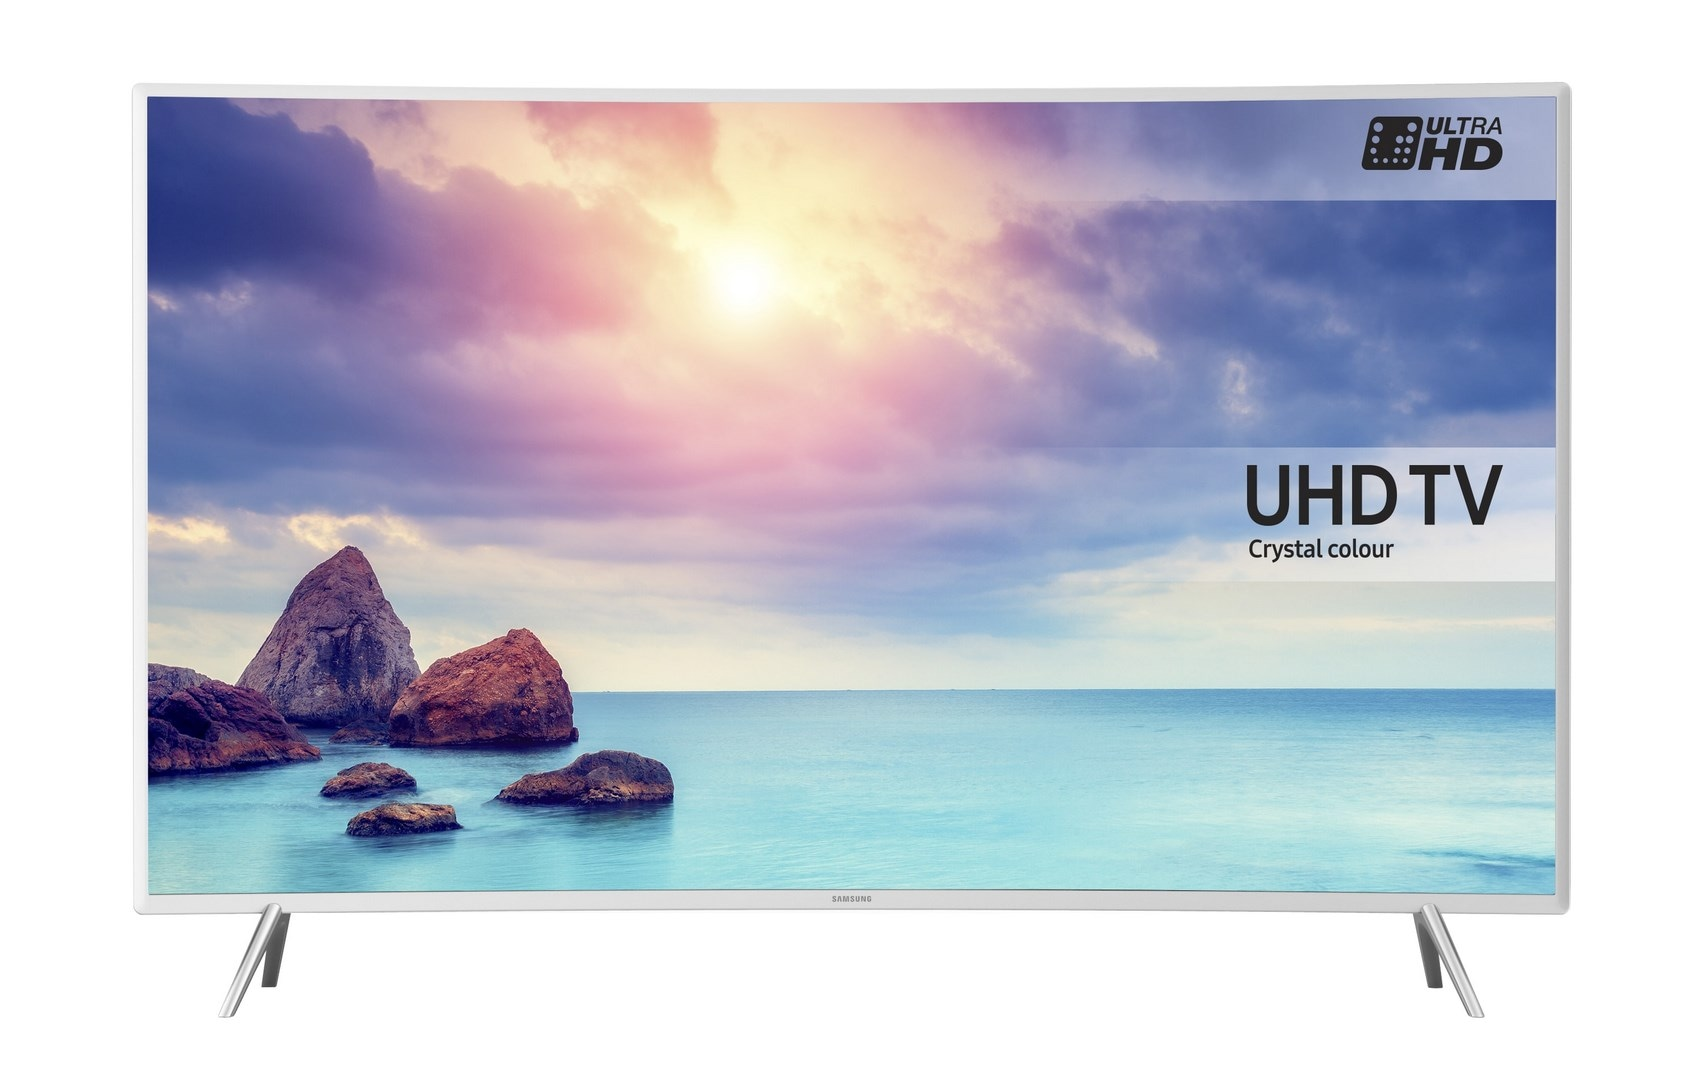 Curved Crystal Color UHD TV 6-Serie UE43KU6510